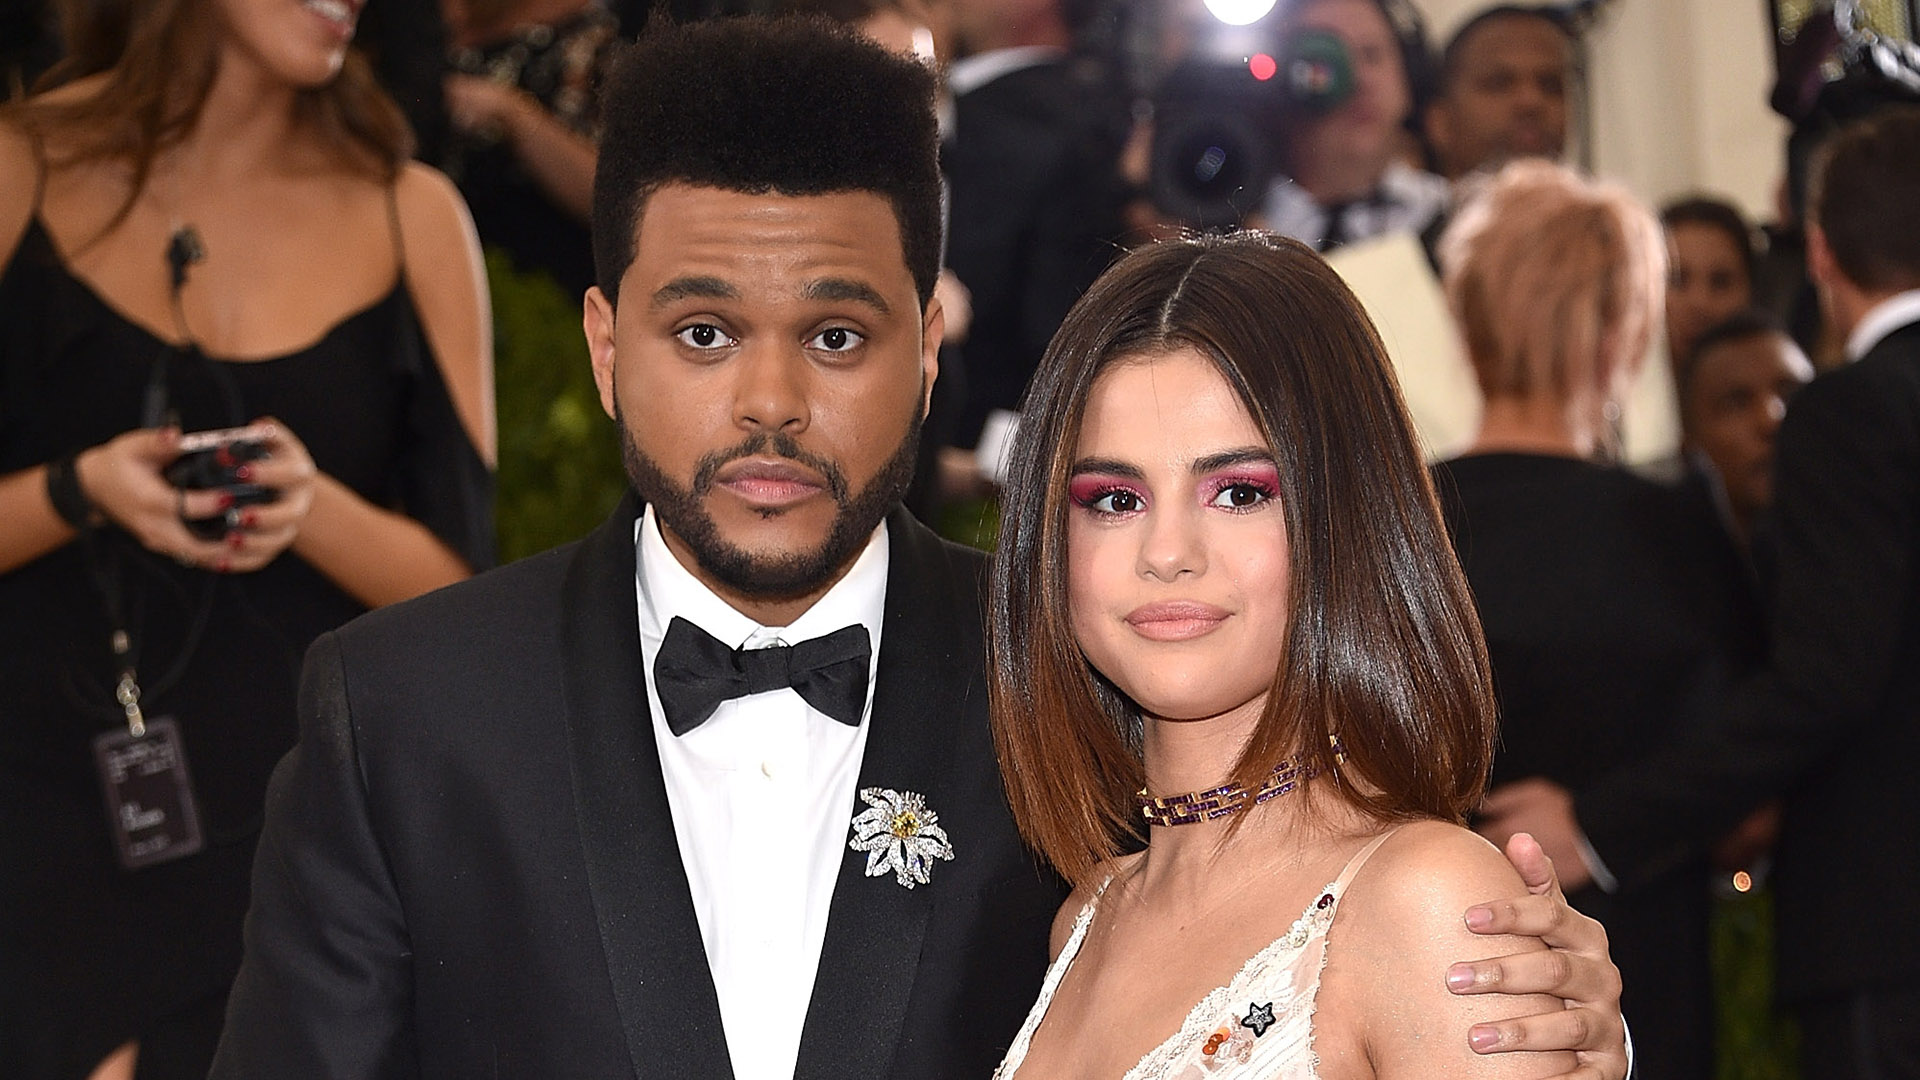 """The Weeknd Might Drop A Song Called """"Like Selena"""" & We Expect Major Selena Gomez Shade"""